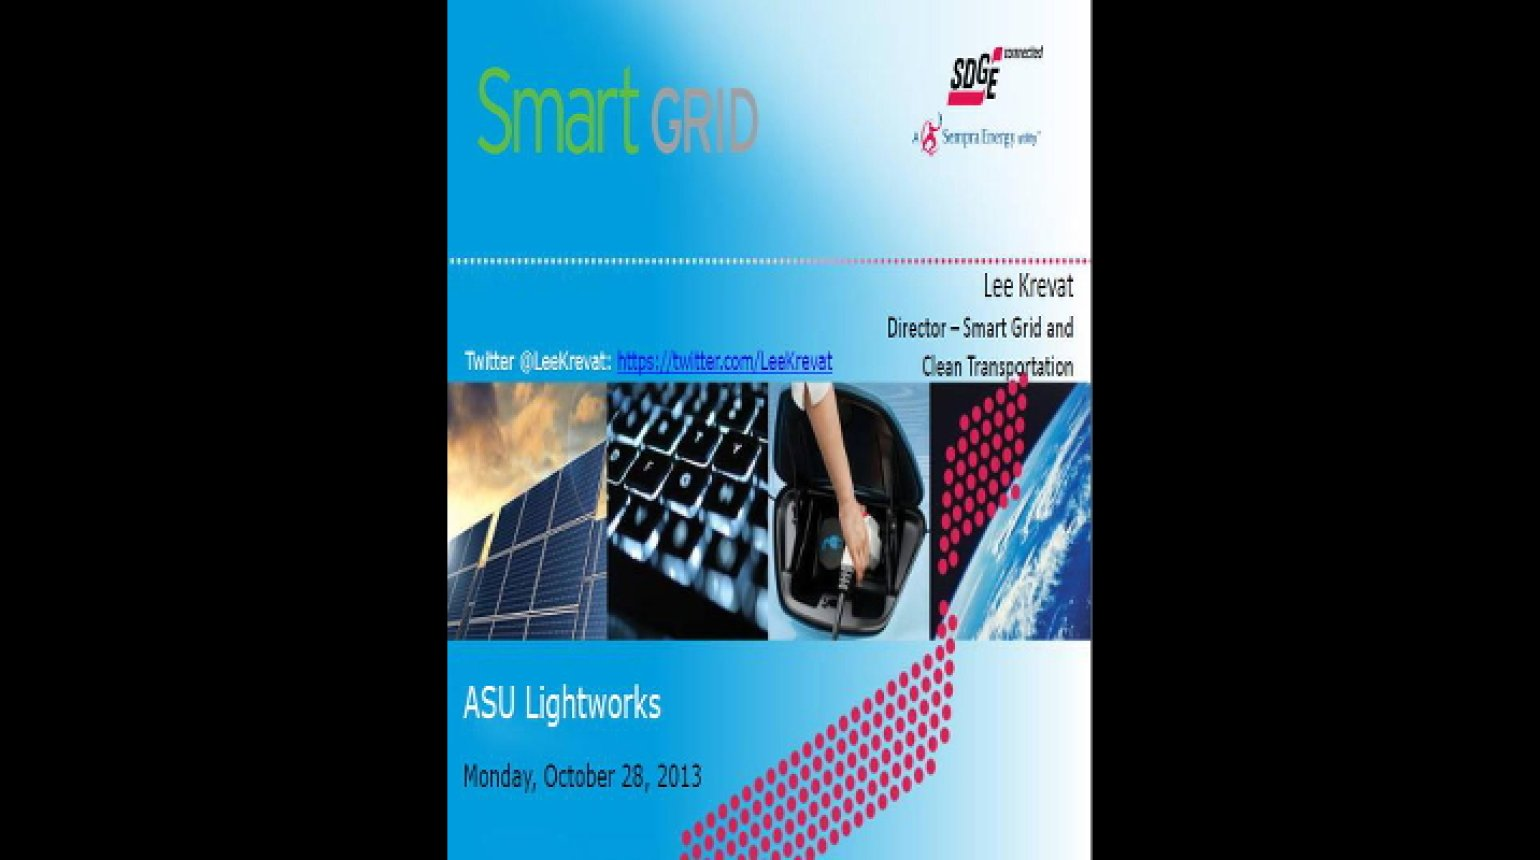 Video - SmartGrid Lightworks